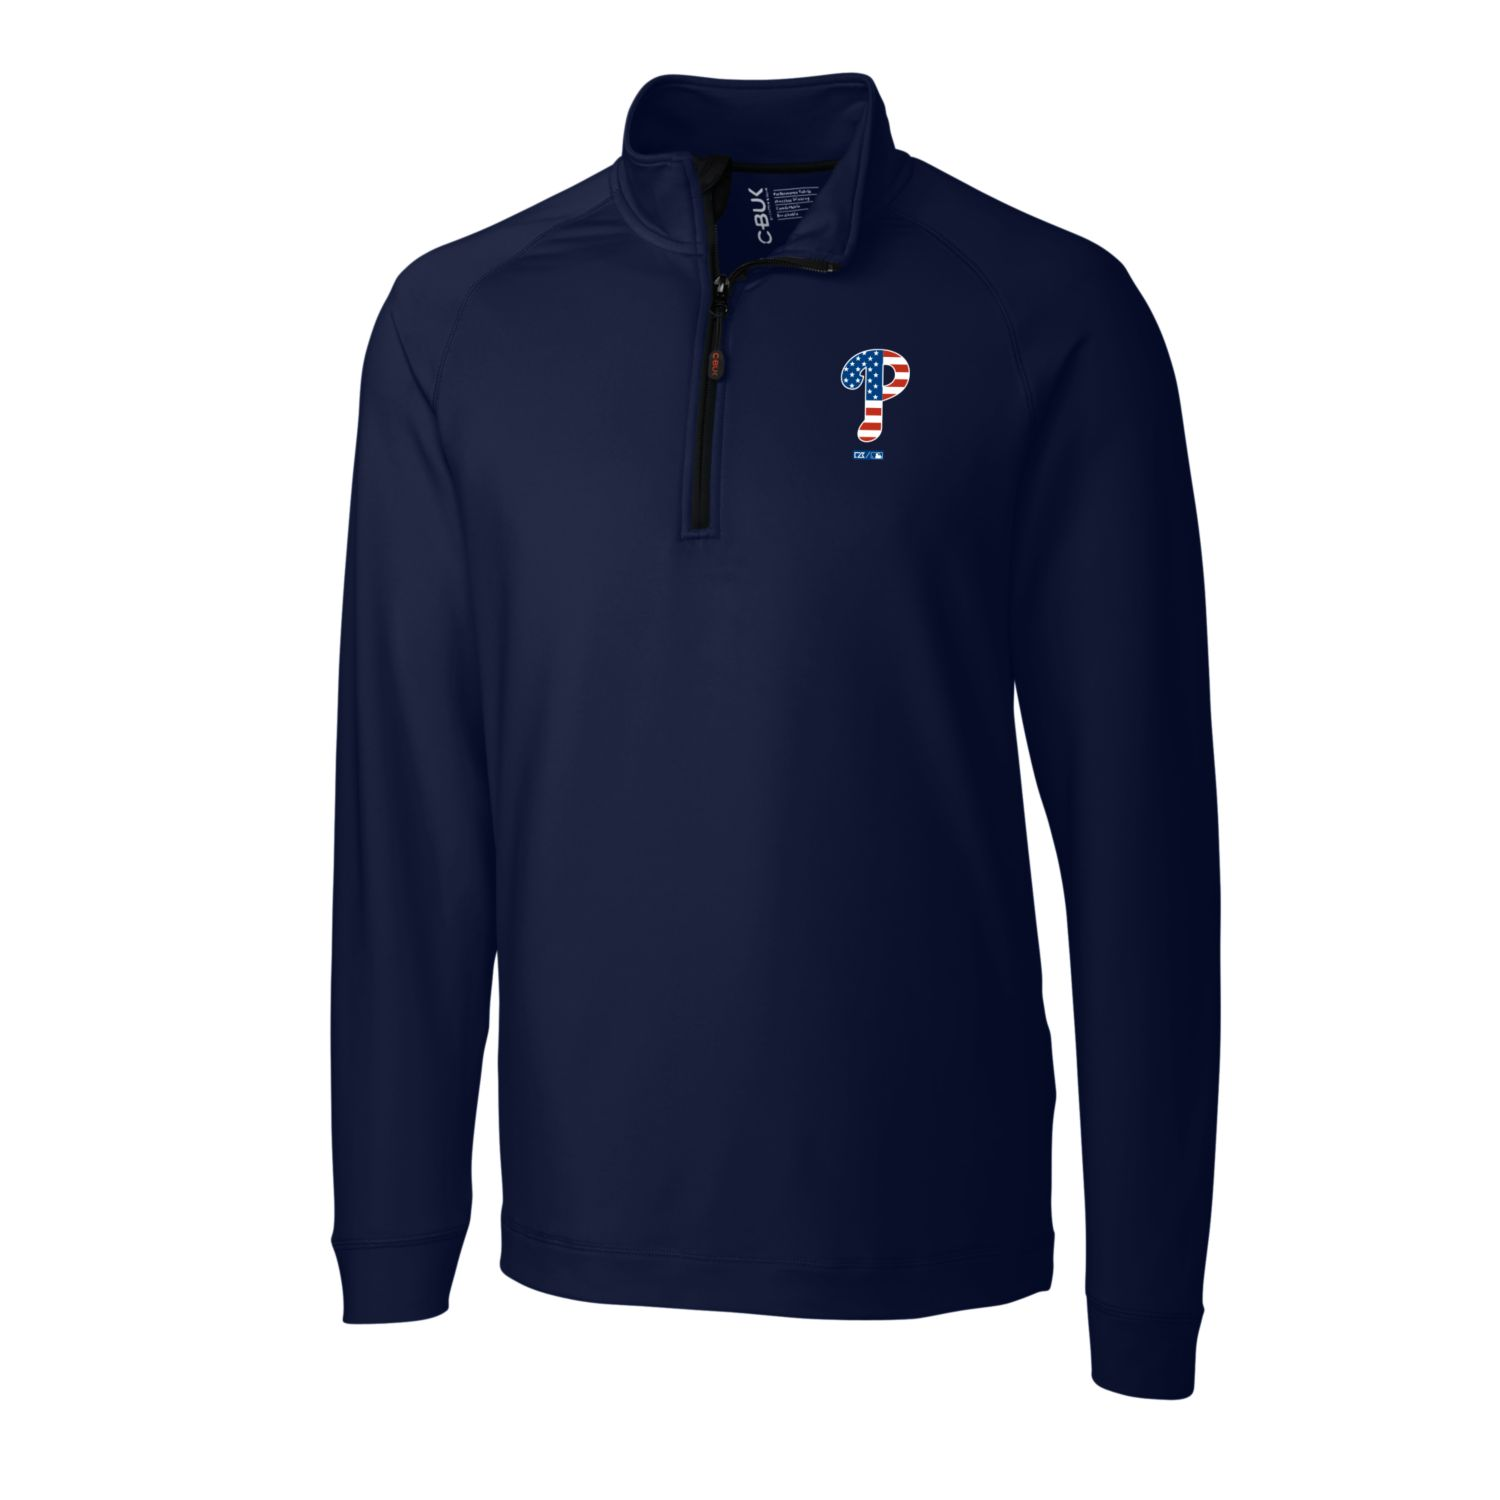 Philadelphia Phillies Cutter & Buck Stars & Stripes Jackson Half-Zip Overknit Pullover Jacket - Navy